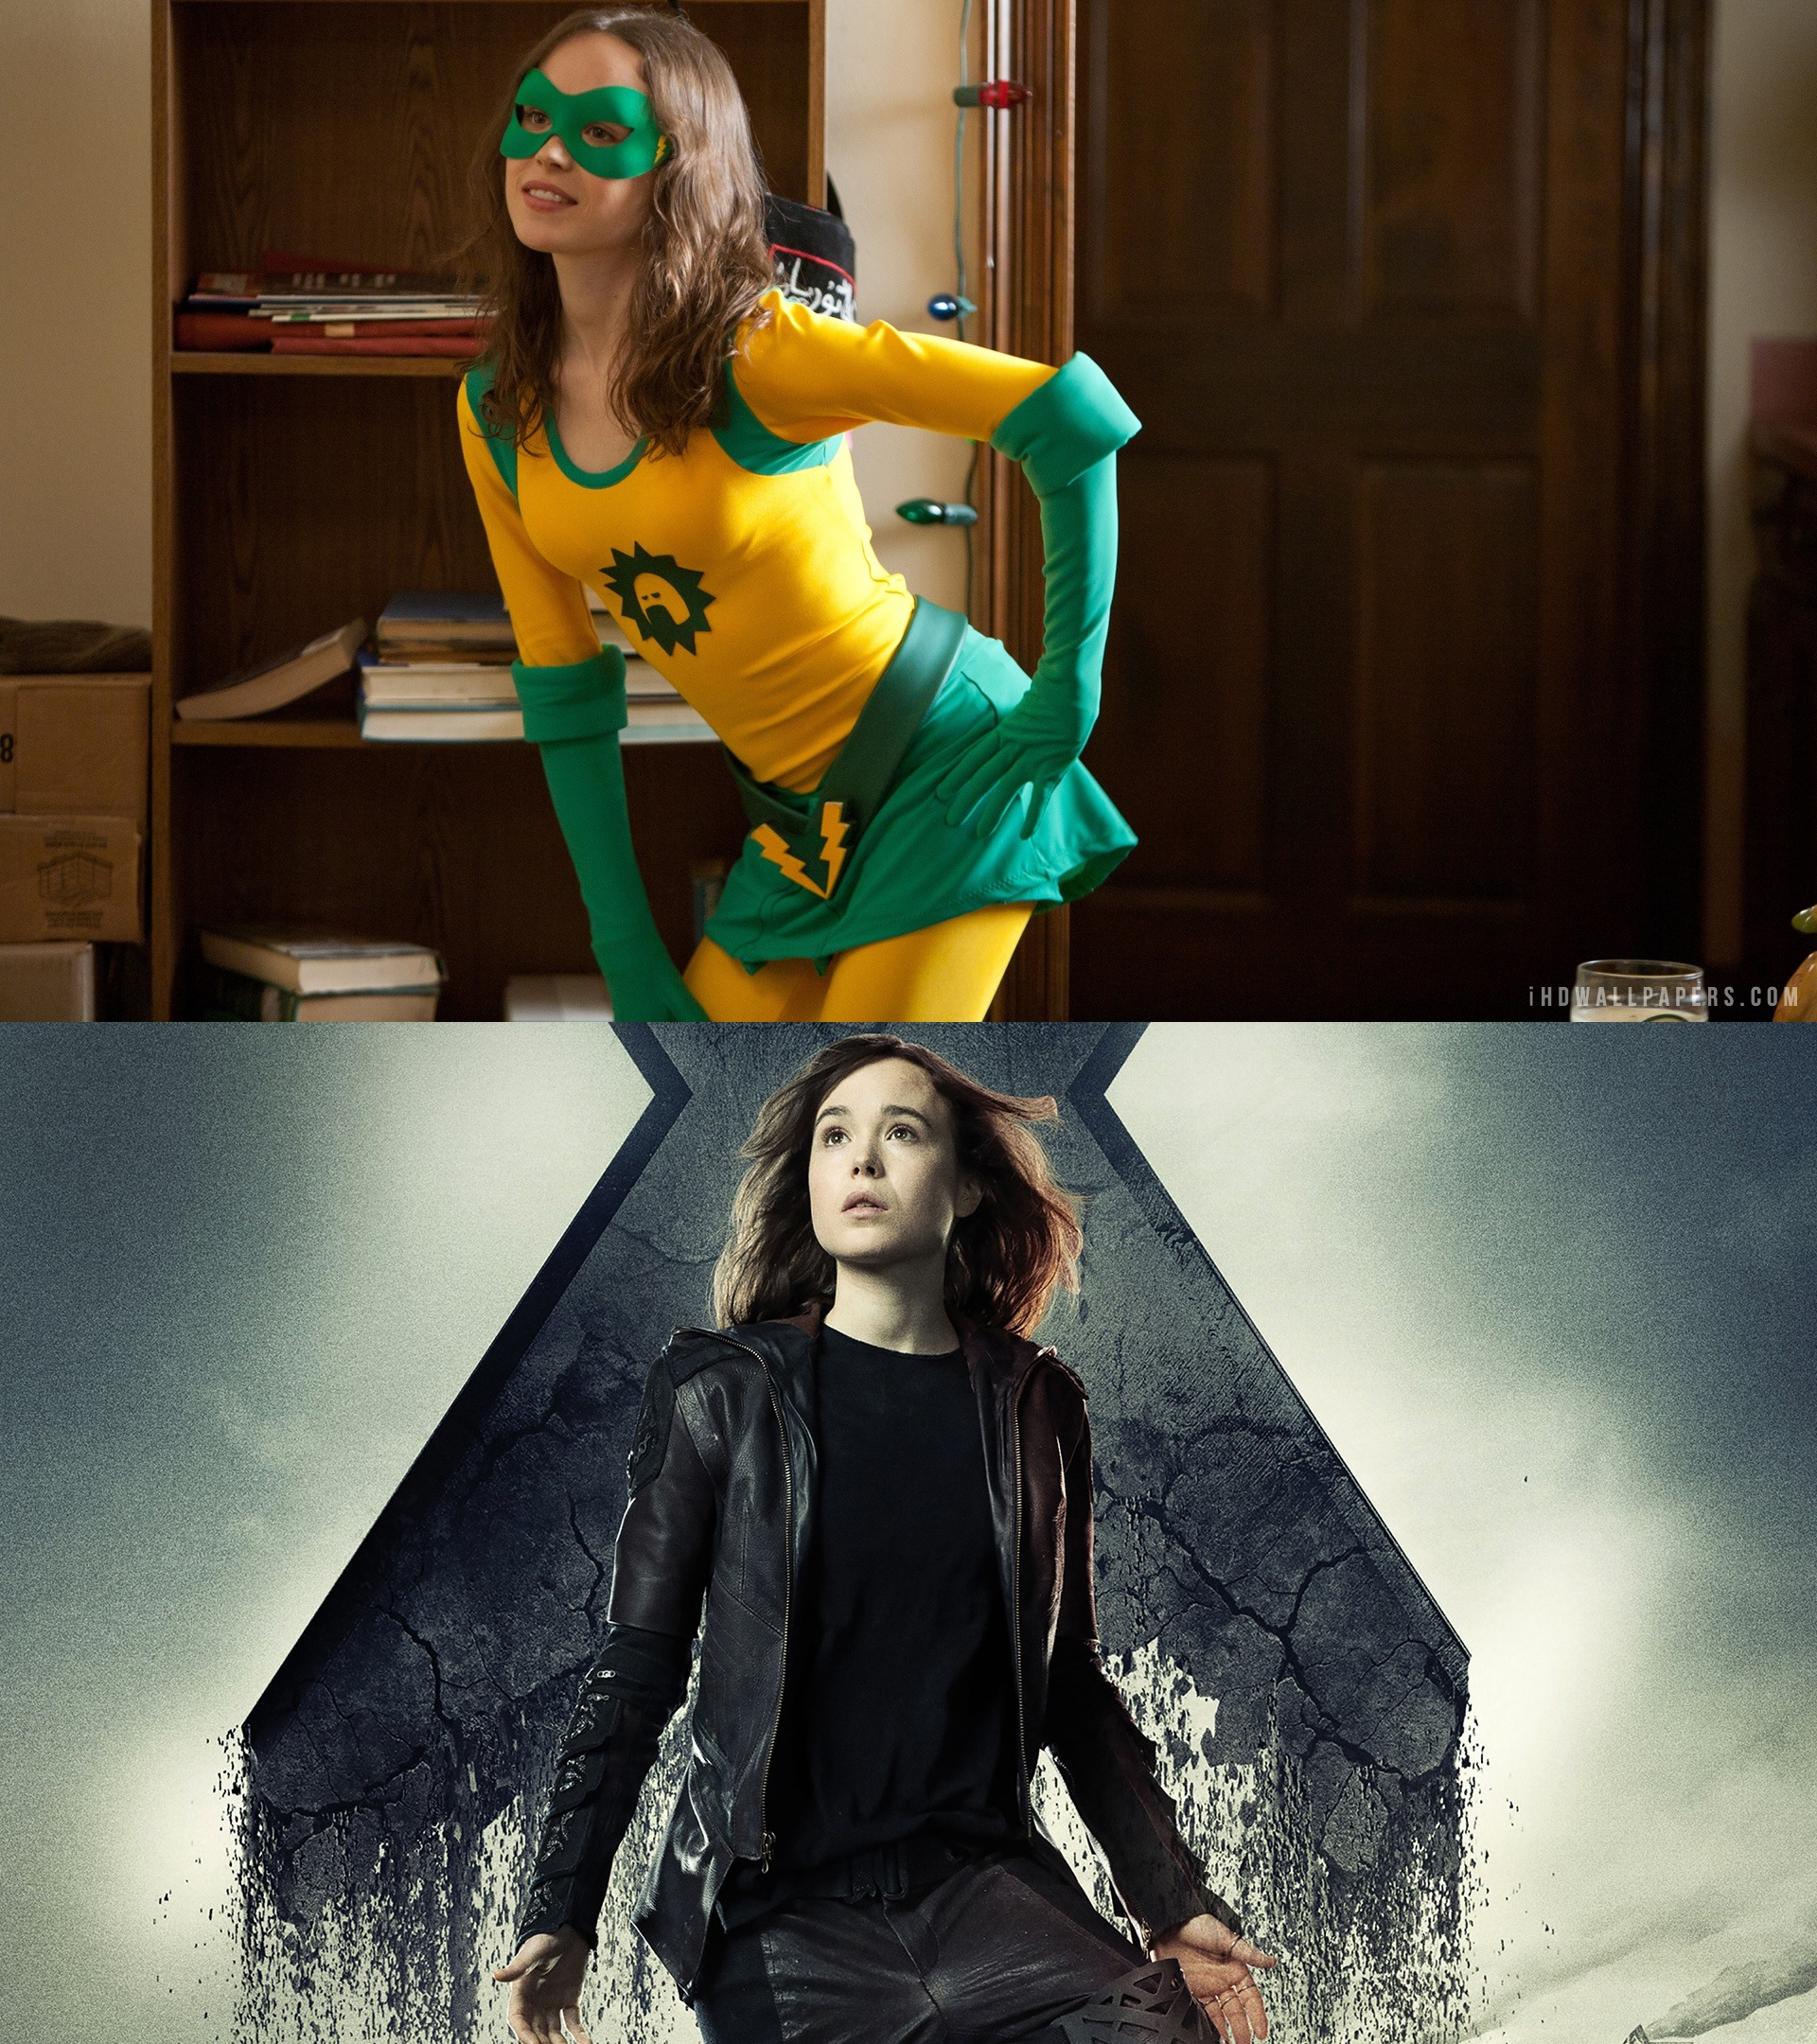 Ellen Page as Super and Kitty Pryde - Actors who have played more than one superhero